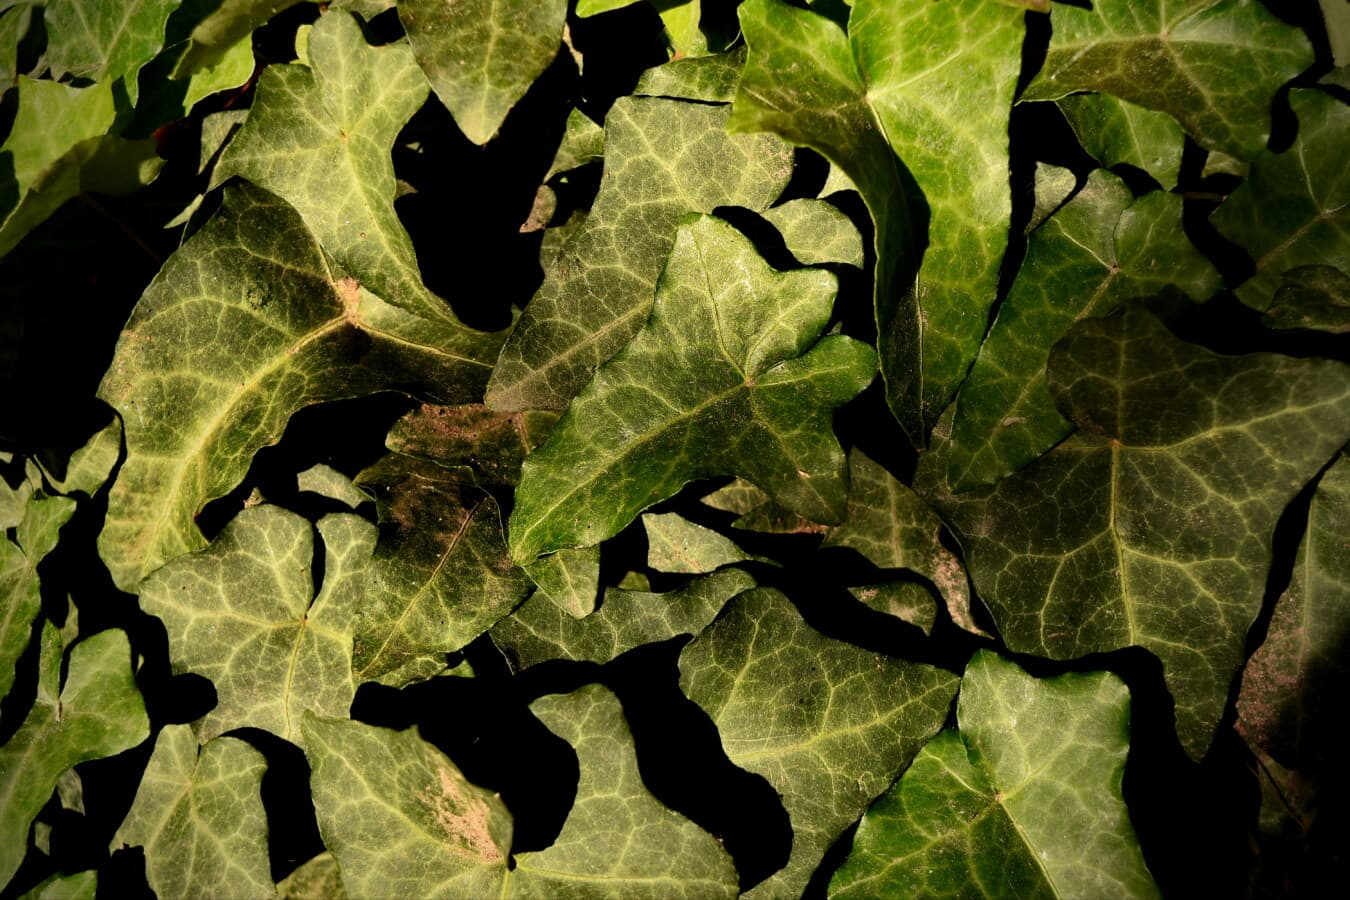 parasite, herb, ivy, close-up, details, green leaves, shadow, organism, greenery, plant